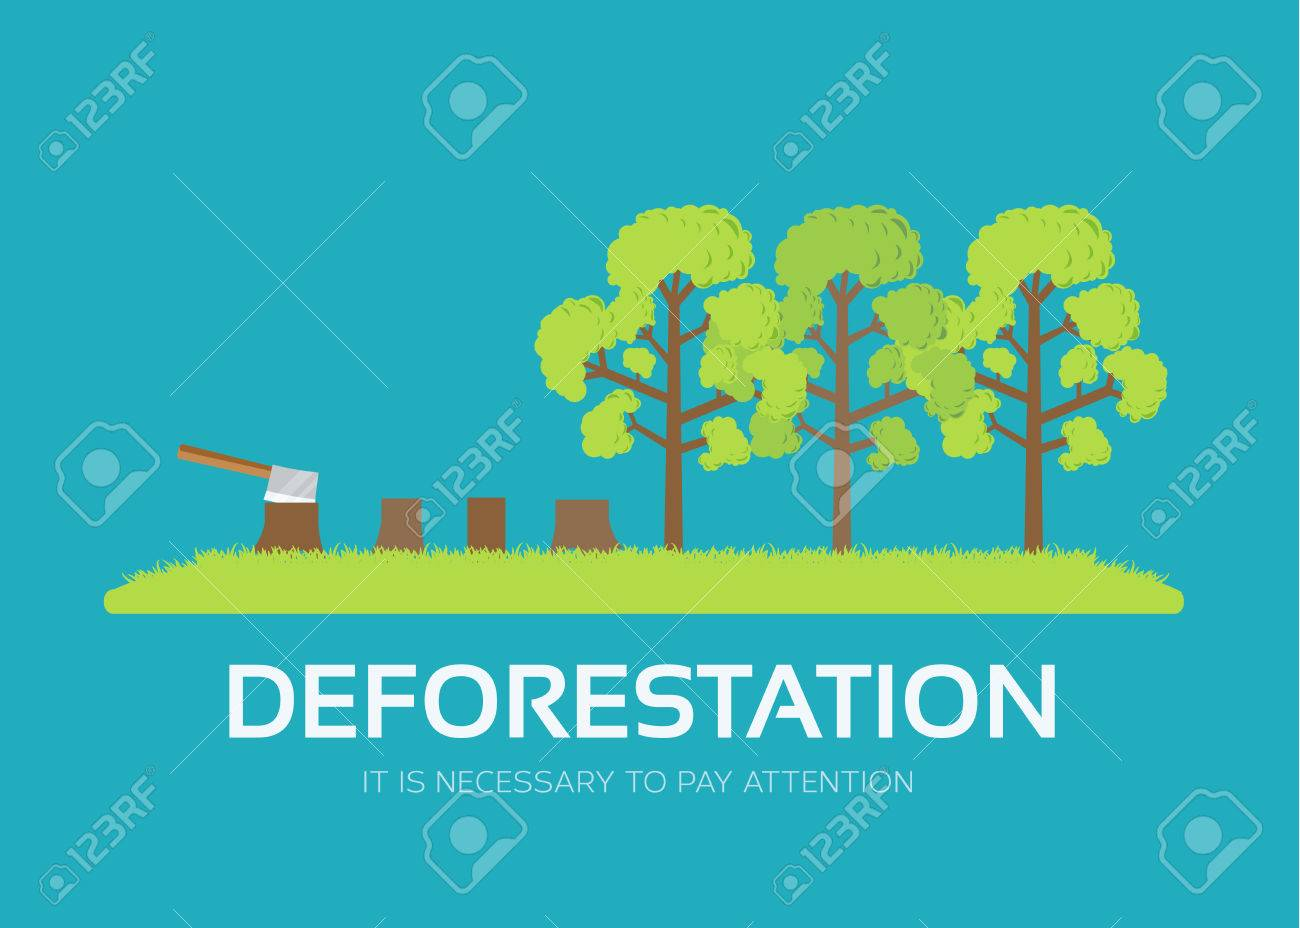 issue deforestation in flat design background concept. Ecological natural problem. Icons for your product or illustration, web and mobile applications - 51591806